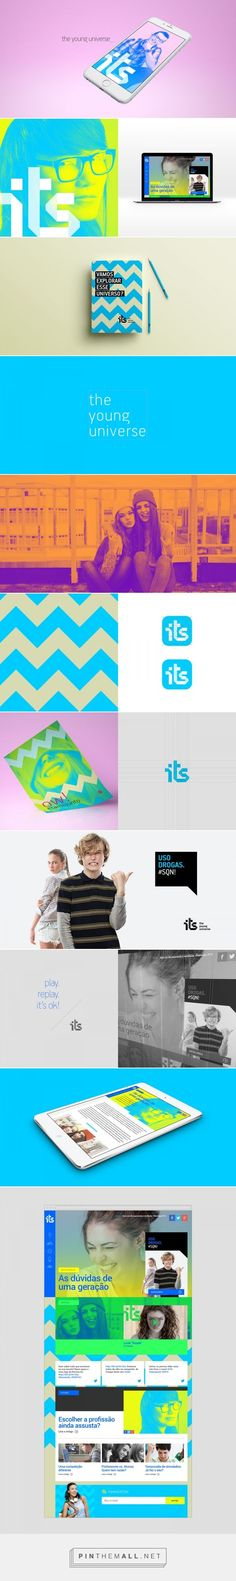 ITS the young universe on Behance... - a grouped images picture - Pin Them All